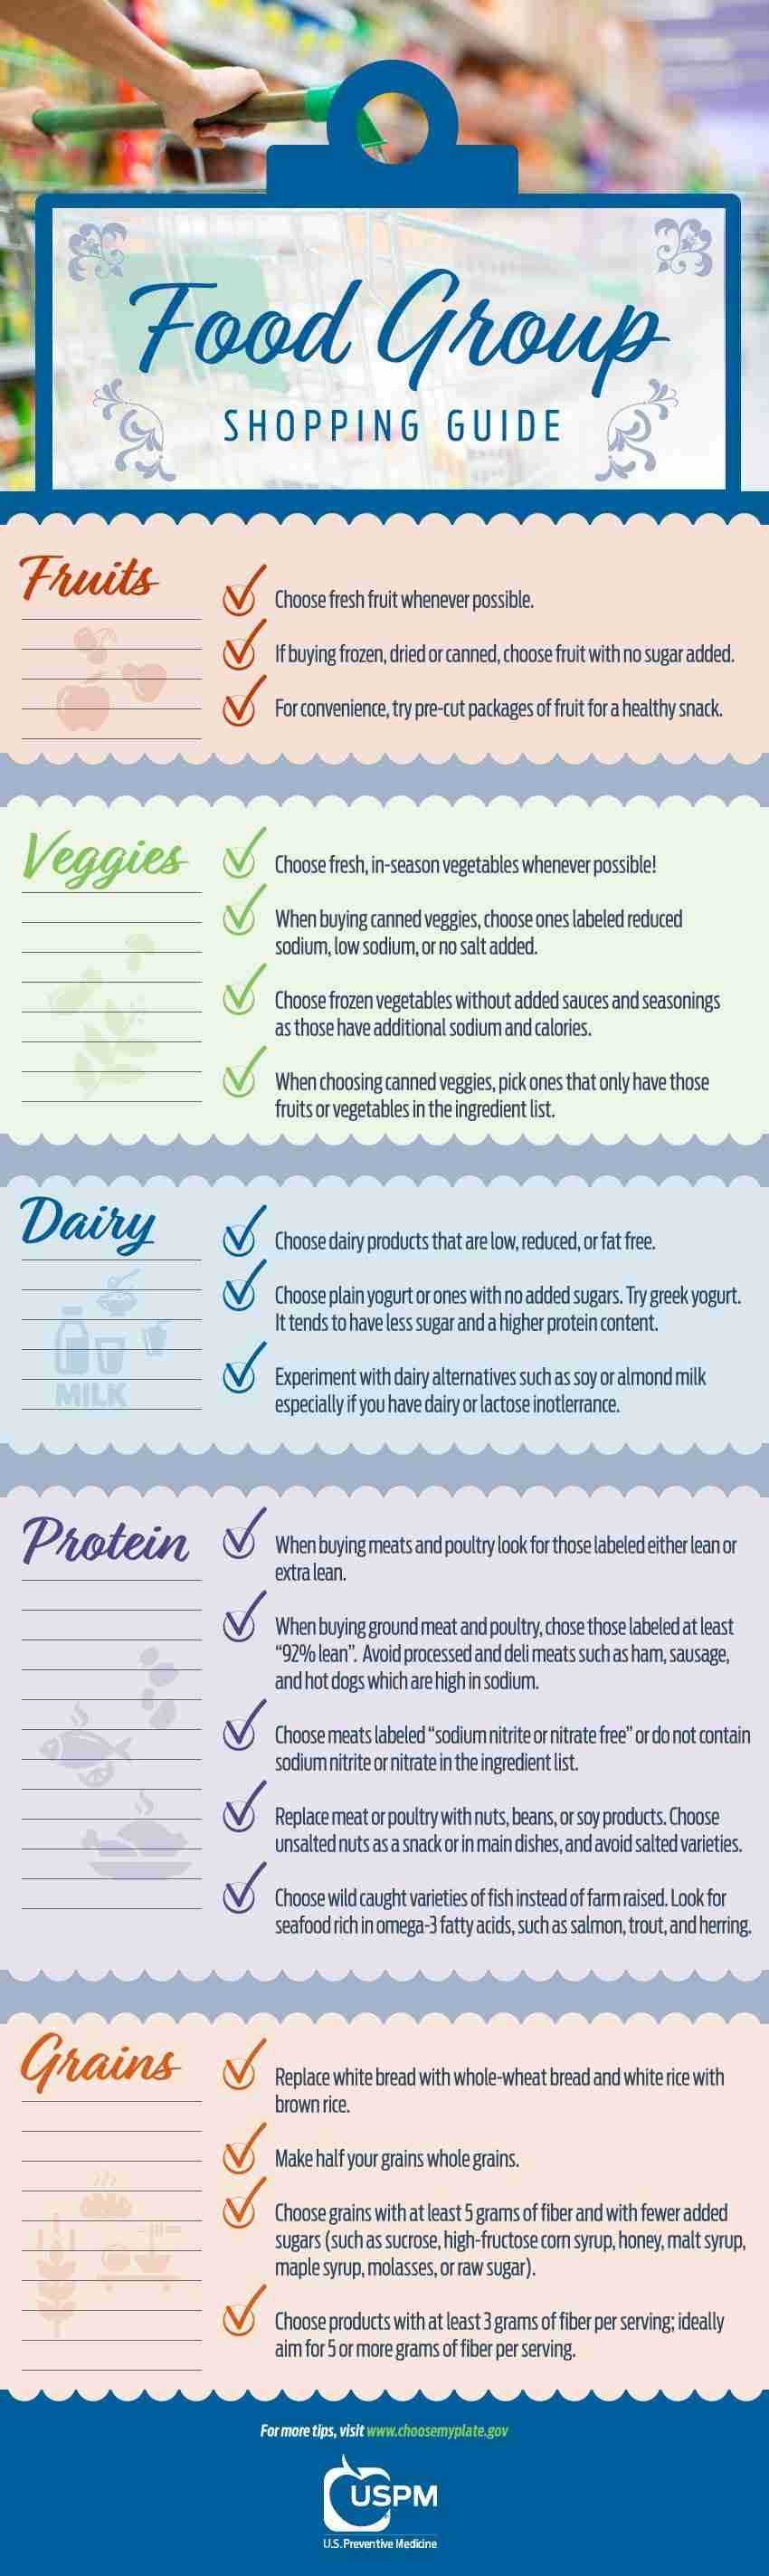 USPM Food Group Grocery Shopping Guide Infographic